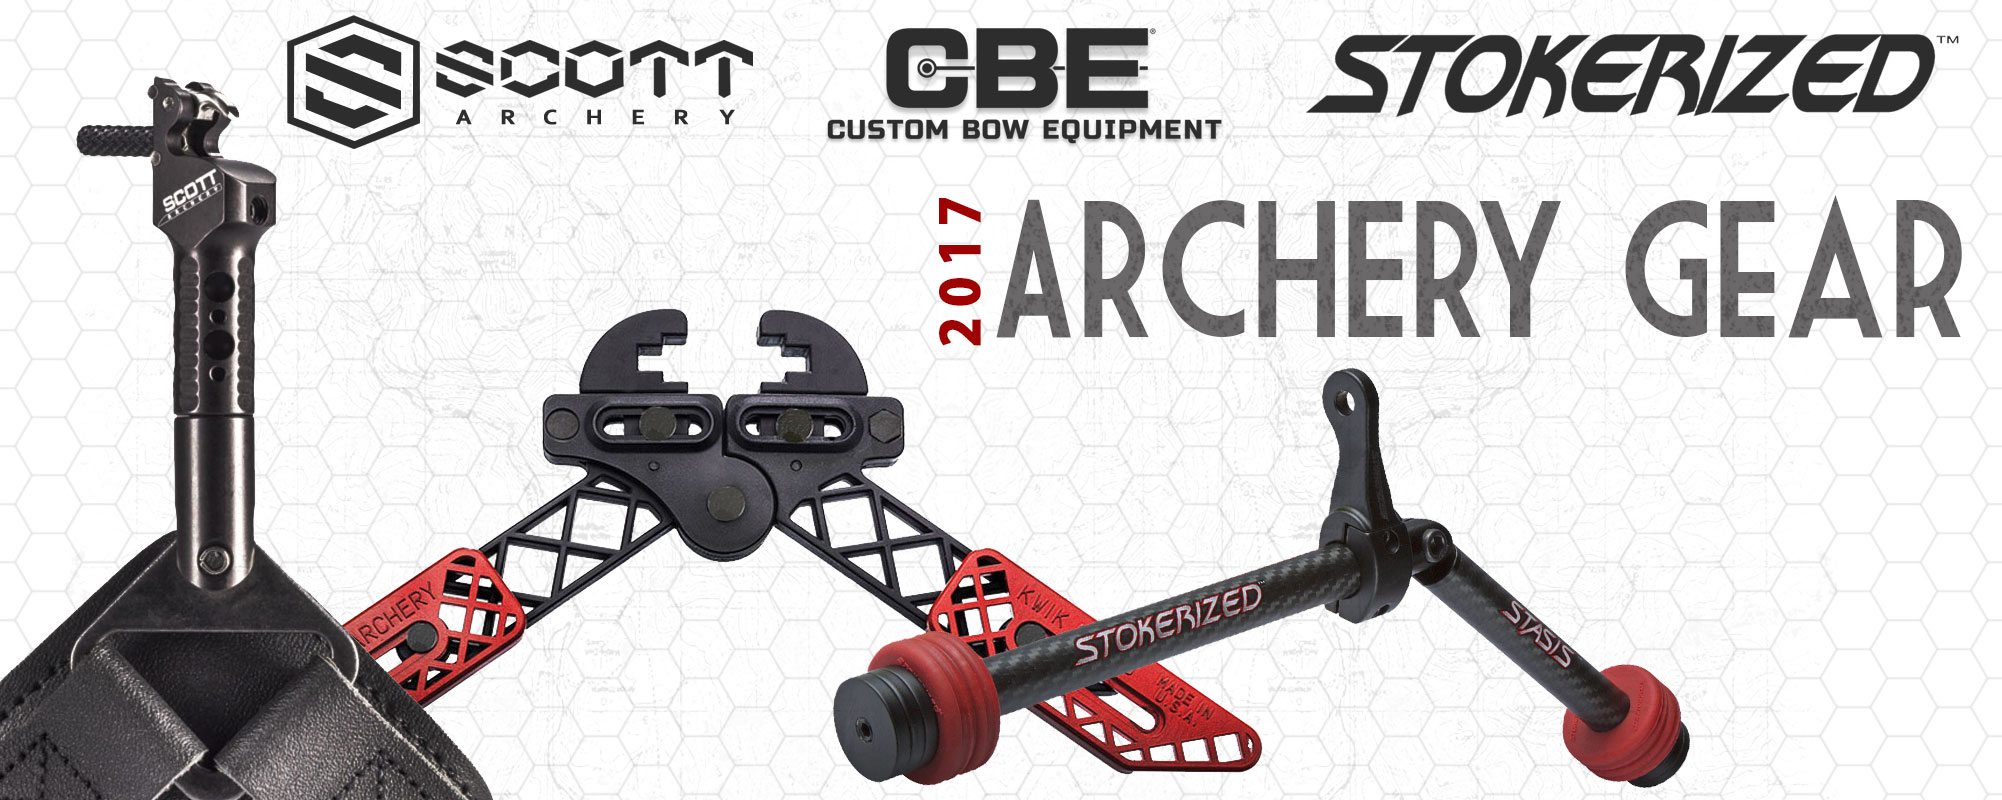 2017 Archery Gear and Accessories